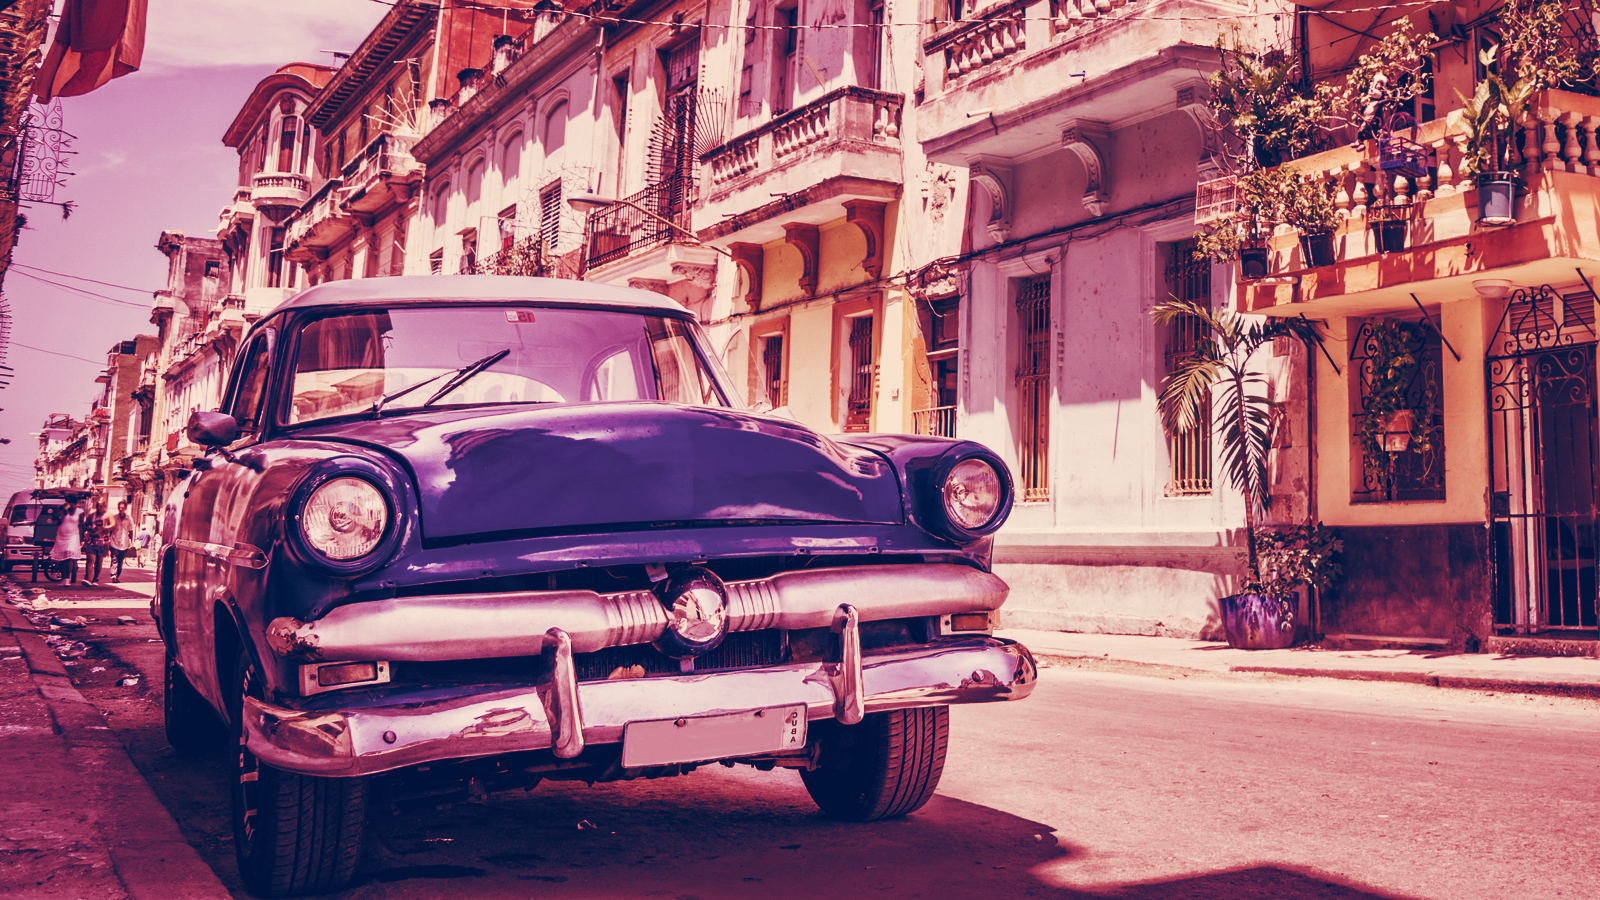 How Cubans Are Using Bitcoin to Skirt US Trade Embargo - Decrypt